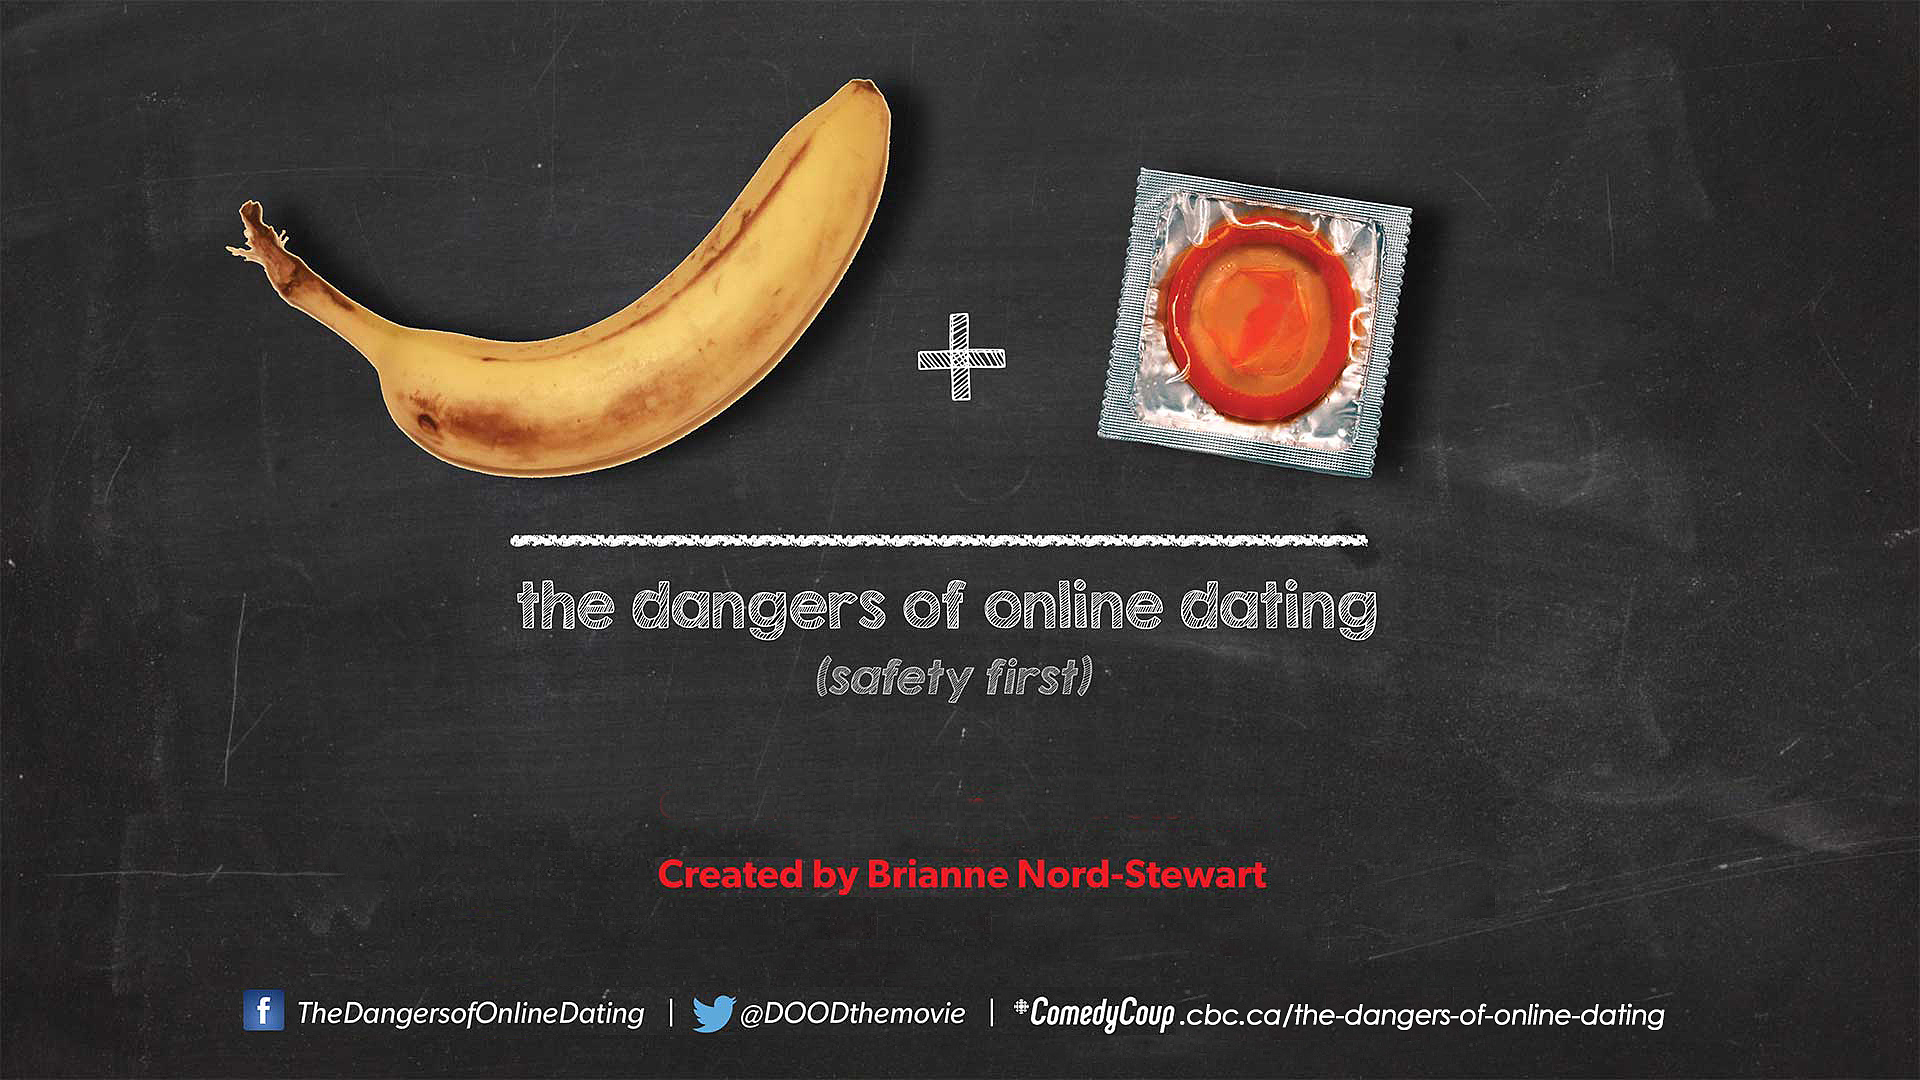 Week 4 Key It: Poster A The Dangers of Online Dating